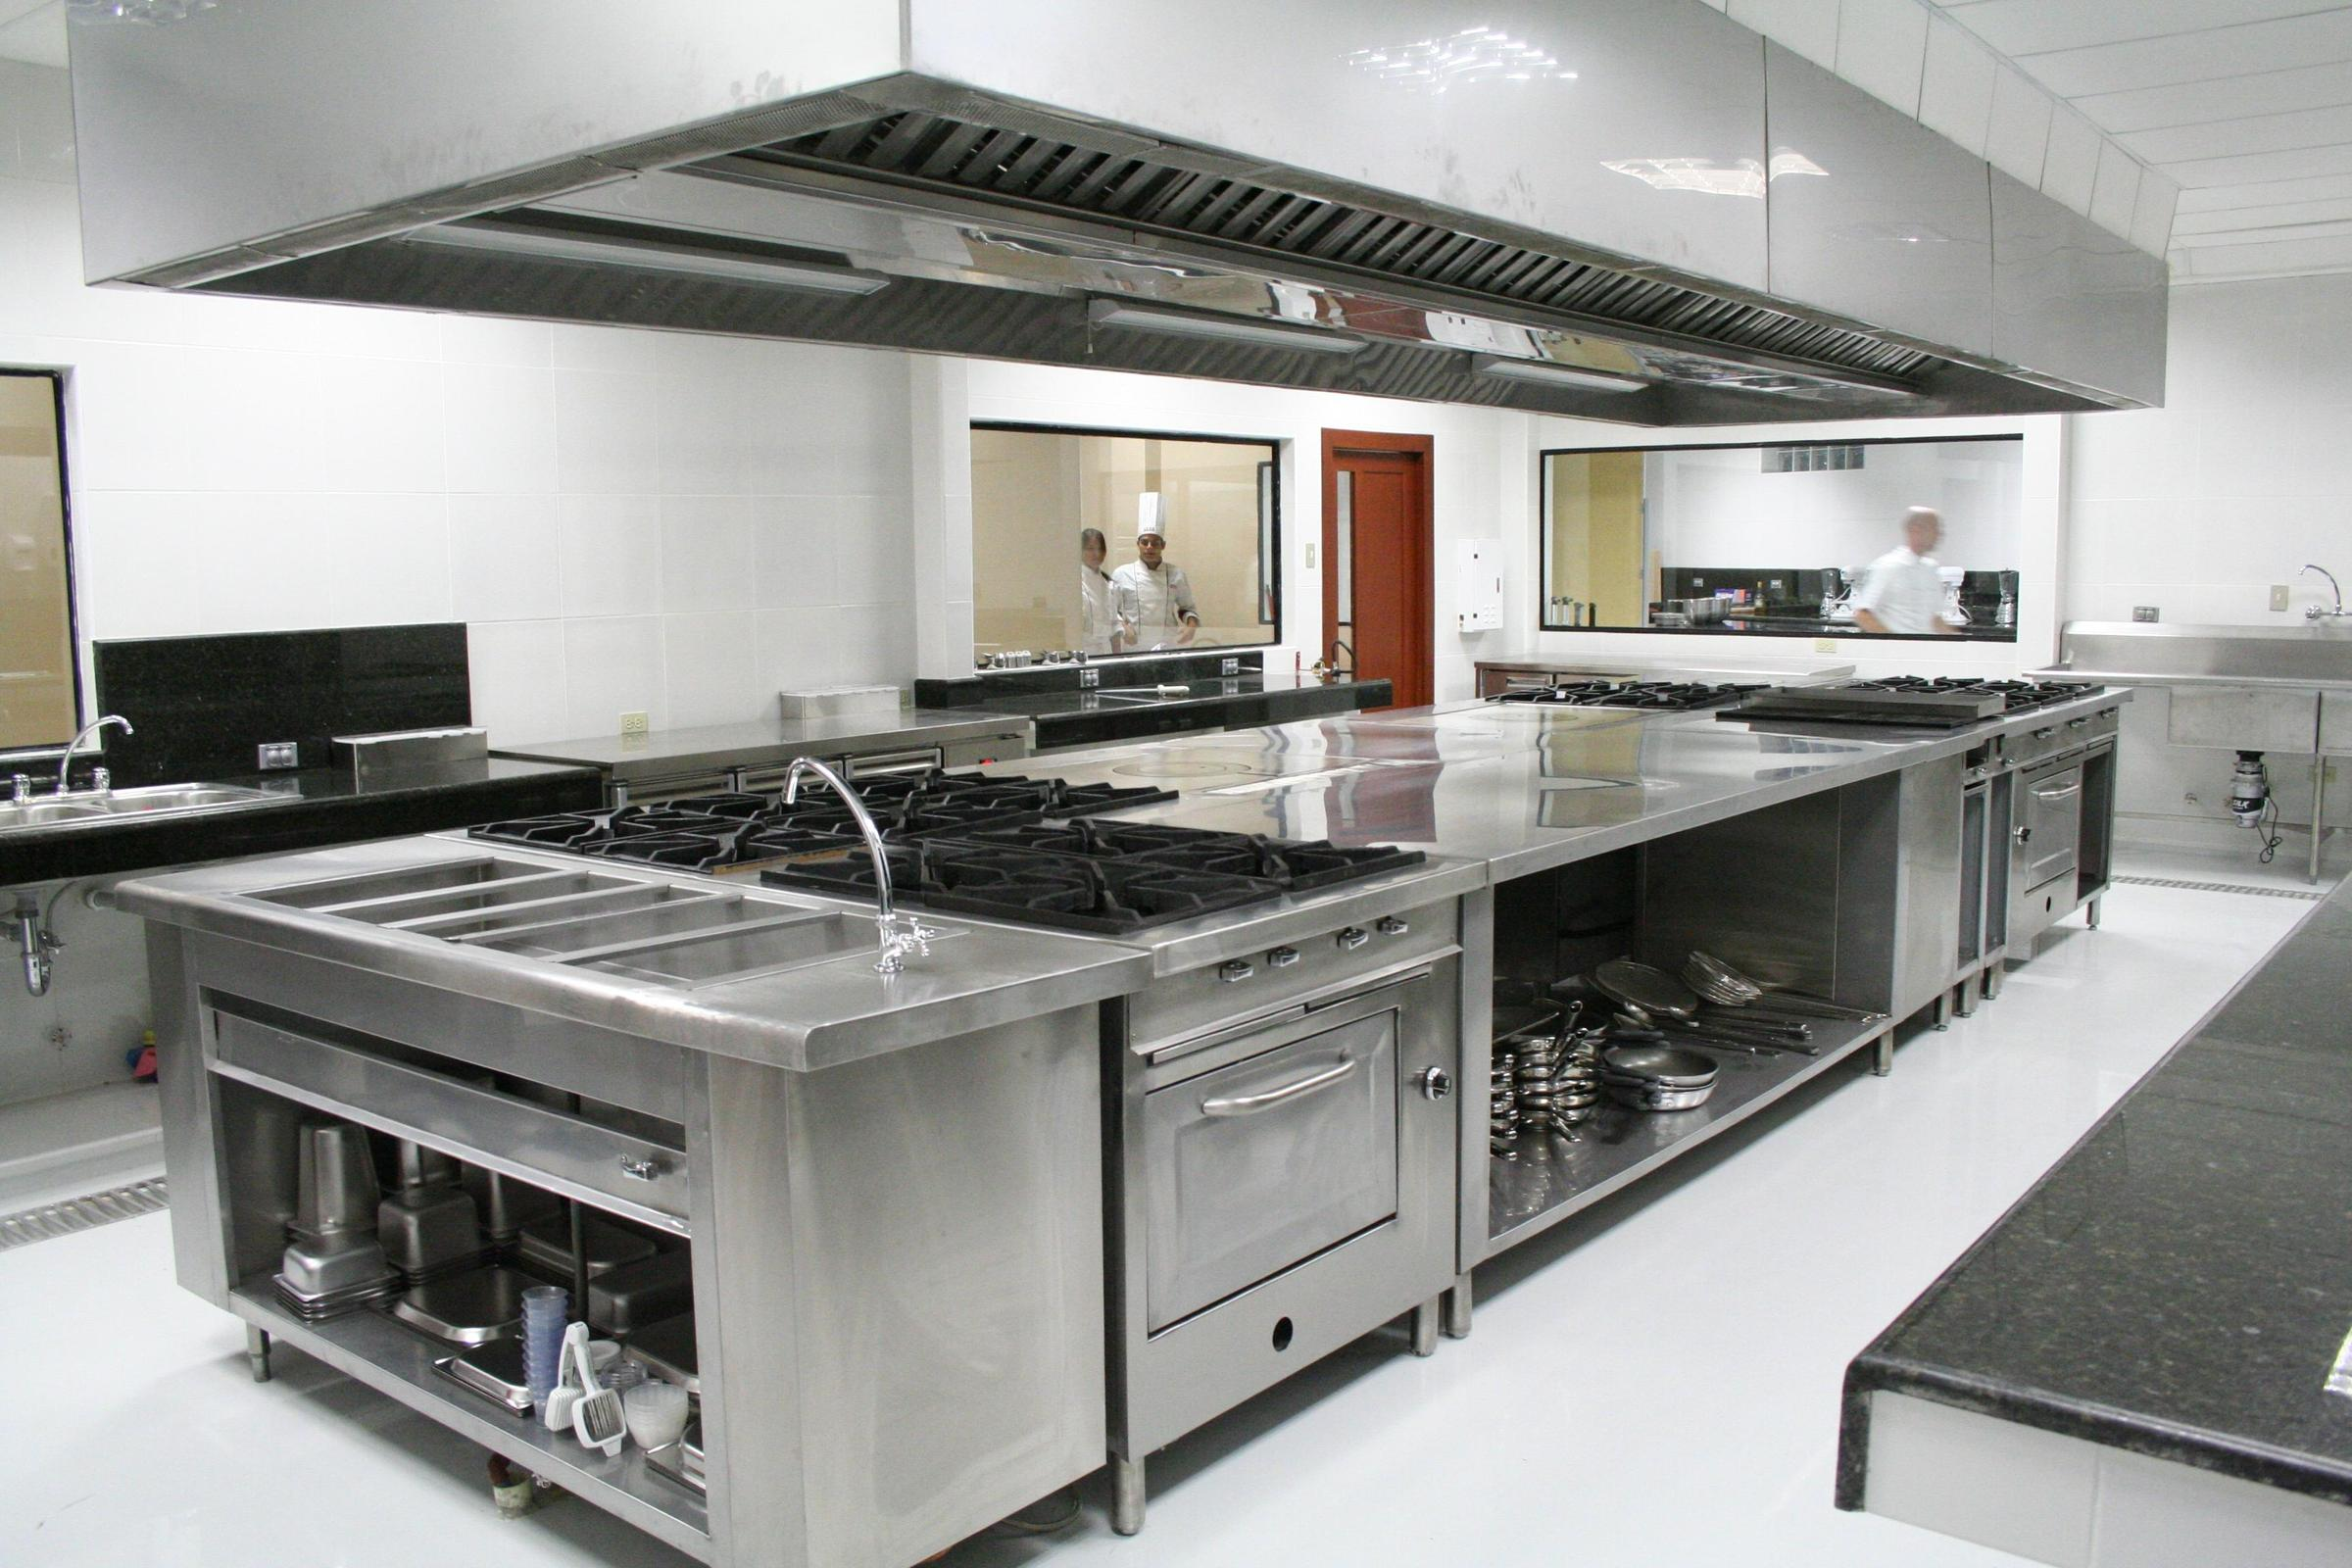 commercial kitchen laws grant funded kitchen to cook up small business 290